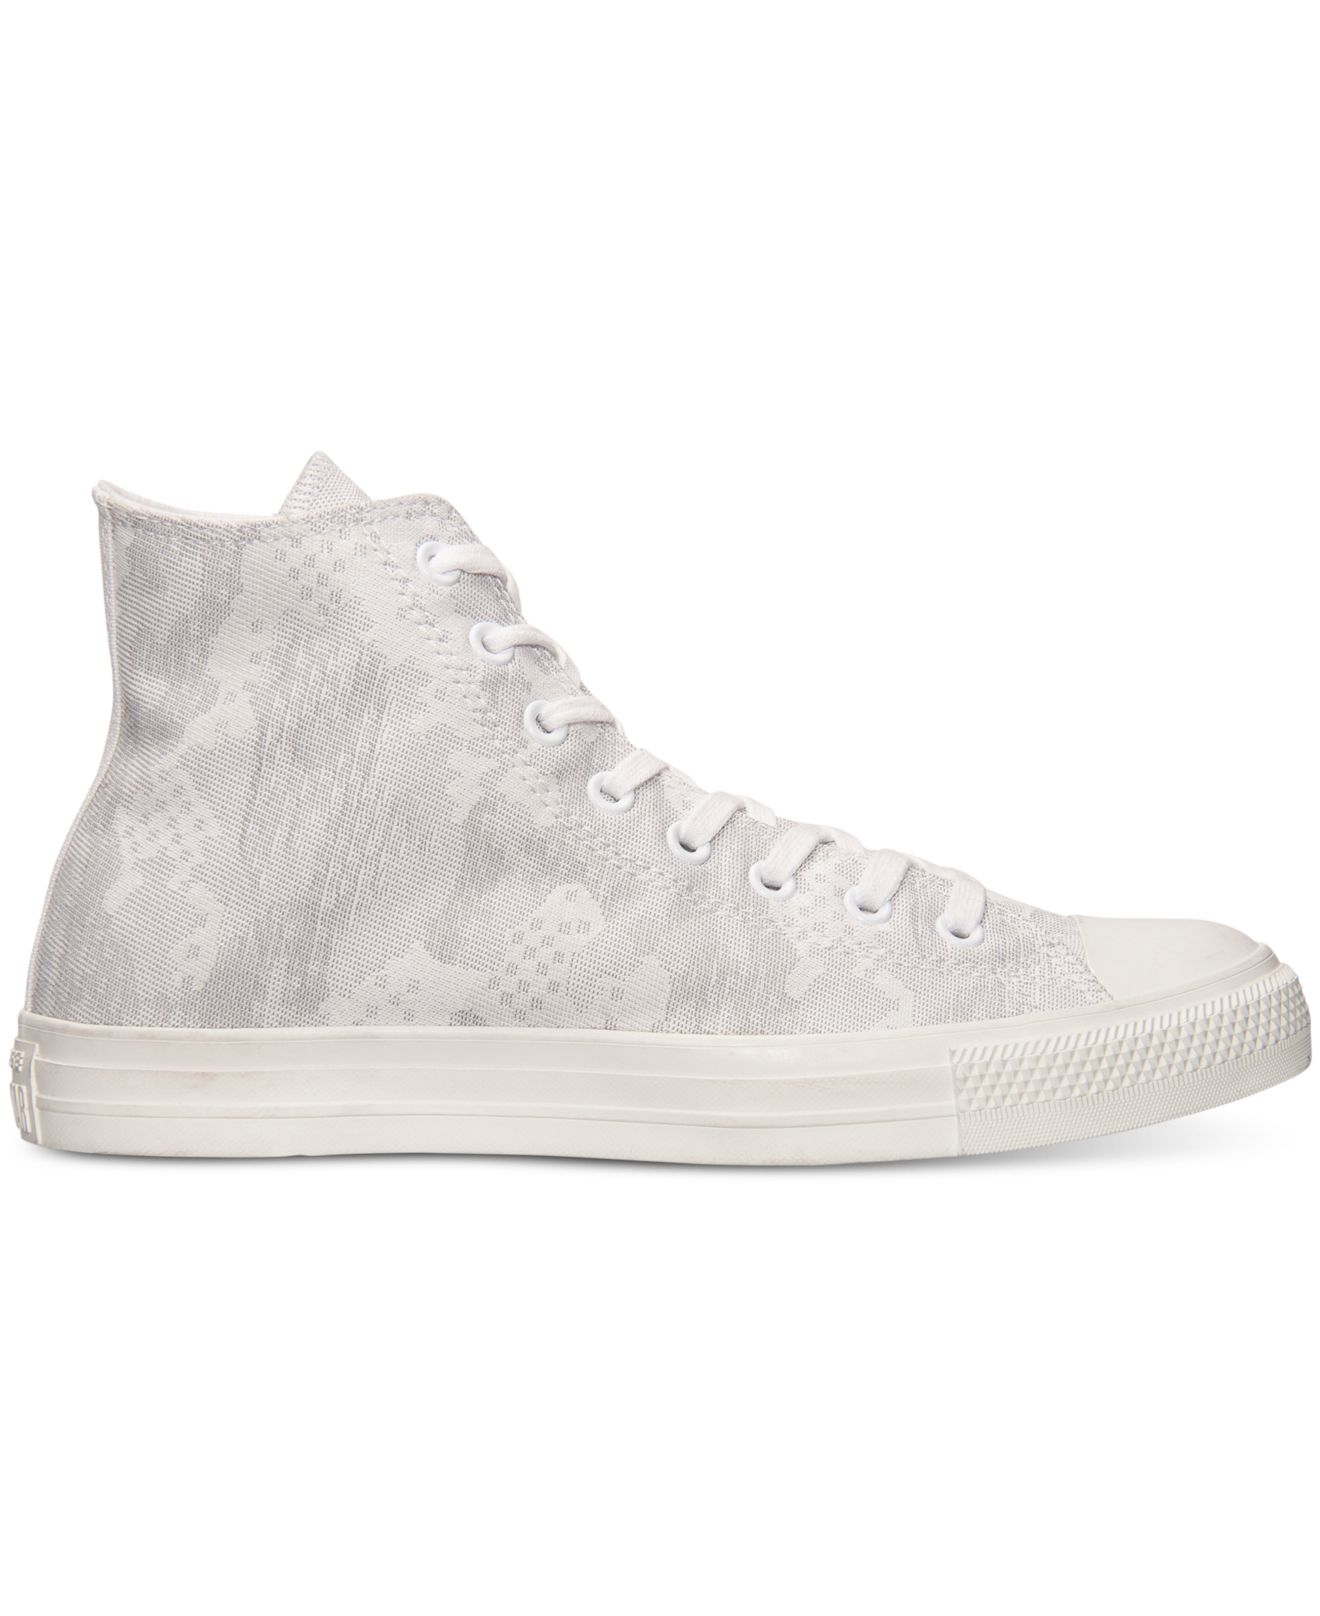 6b4f6cdc6b7ae Converse Men s Chuck Taylor High Camo Jacquard Casual Sneakers From ...